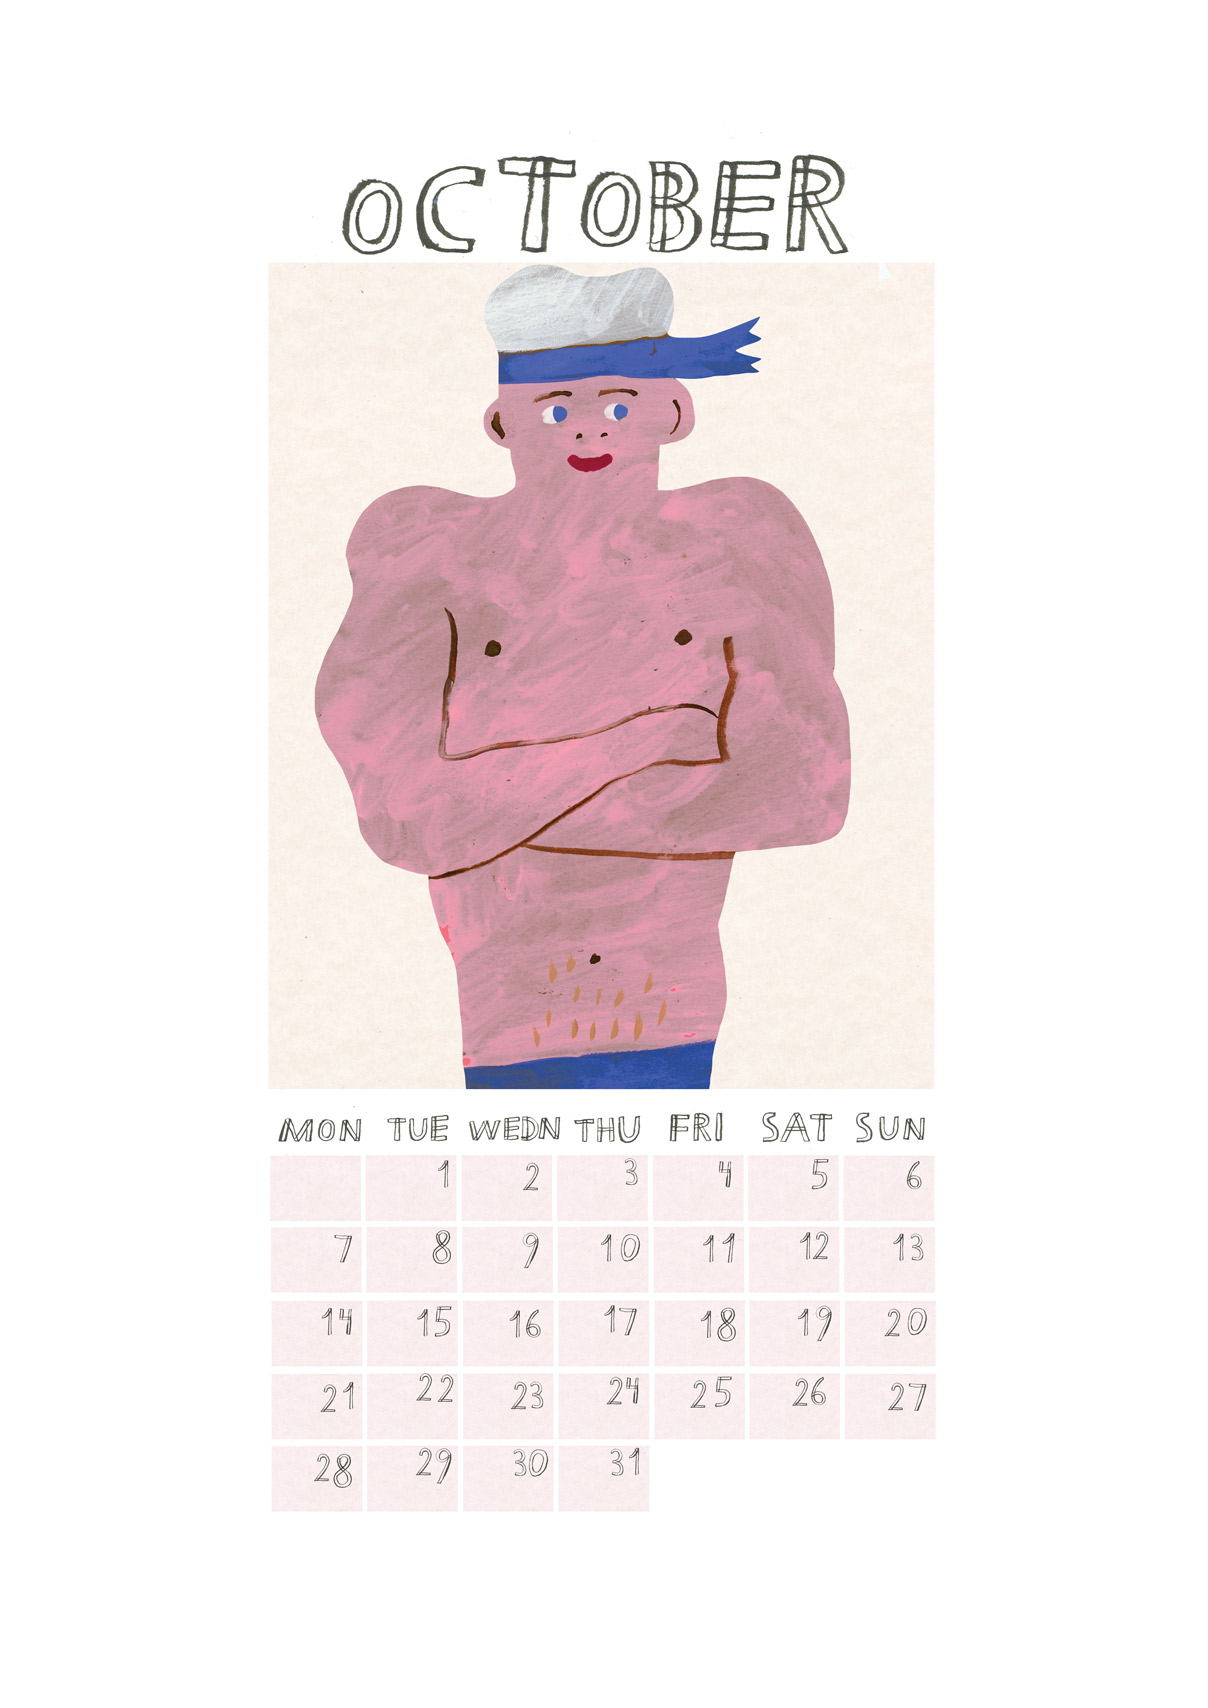 A CELEBRATION OF THE MALE PHYSIQUE - I painted a 12 muscle men for the 2019 Walkyland wall calendar. You can purchase in my web shopWhen not working on commissions I like to paint the things no one ever pays me to paint, such as Ducks, Beer bottle and Half naked men. Being an illustrator means you can draw anything and everything. It's the best job in the world.